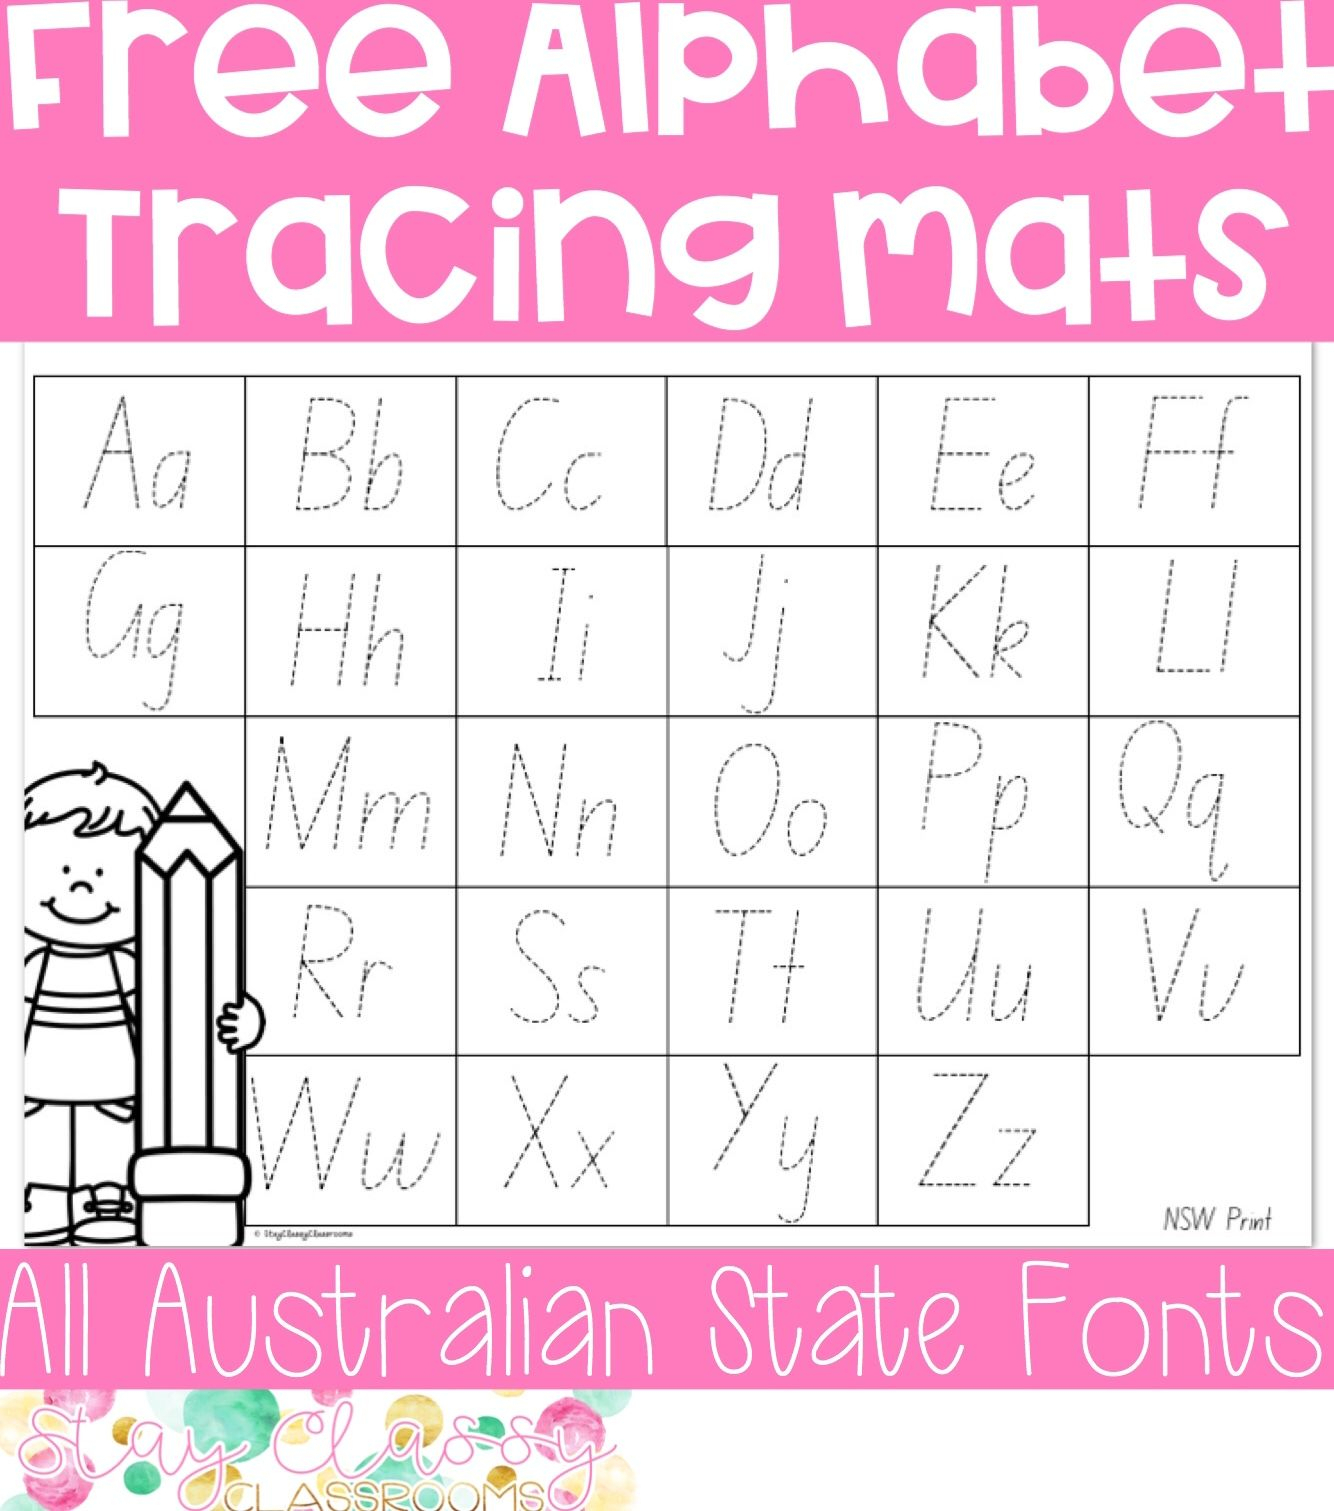 Alphabet Tracing Mats (Print And Australian Fonts in Alphabet Tracing Nsw